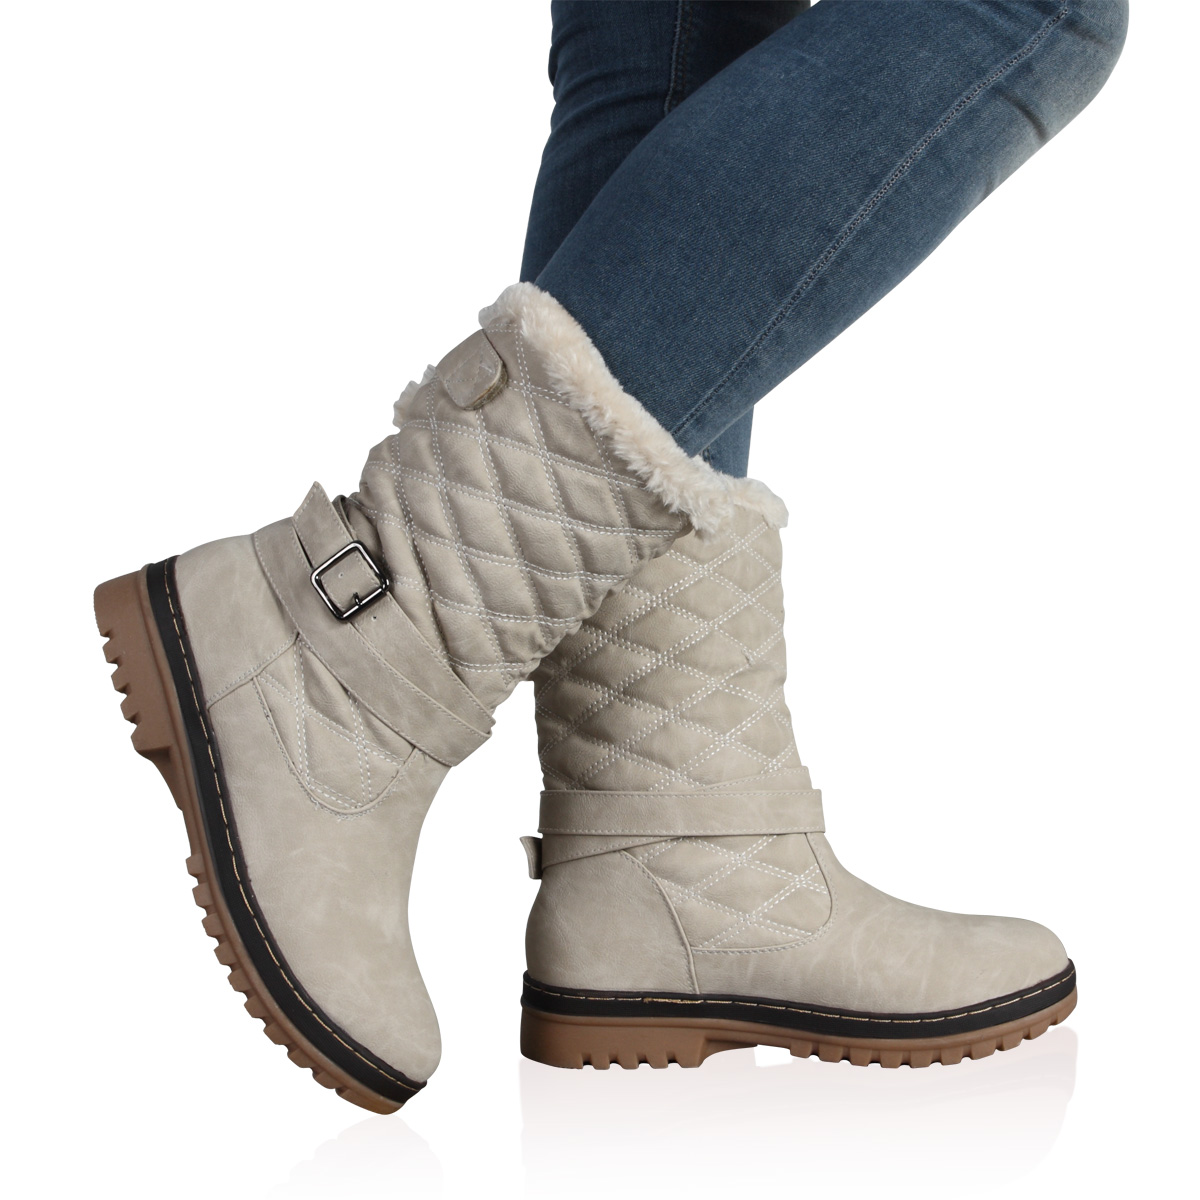 Snow Boots For Women Sale - Yu Boots